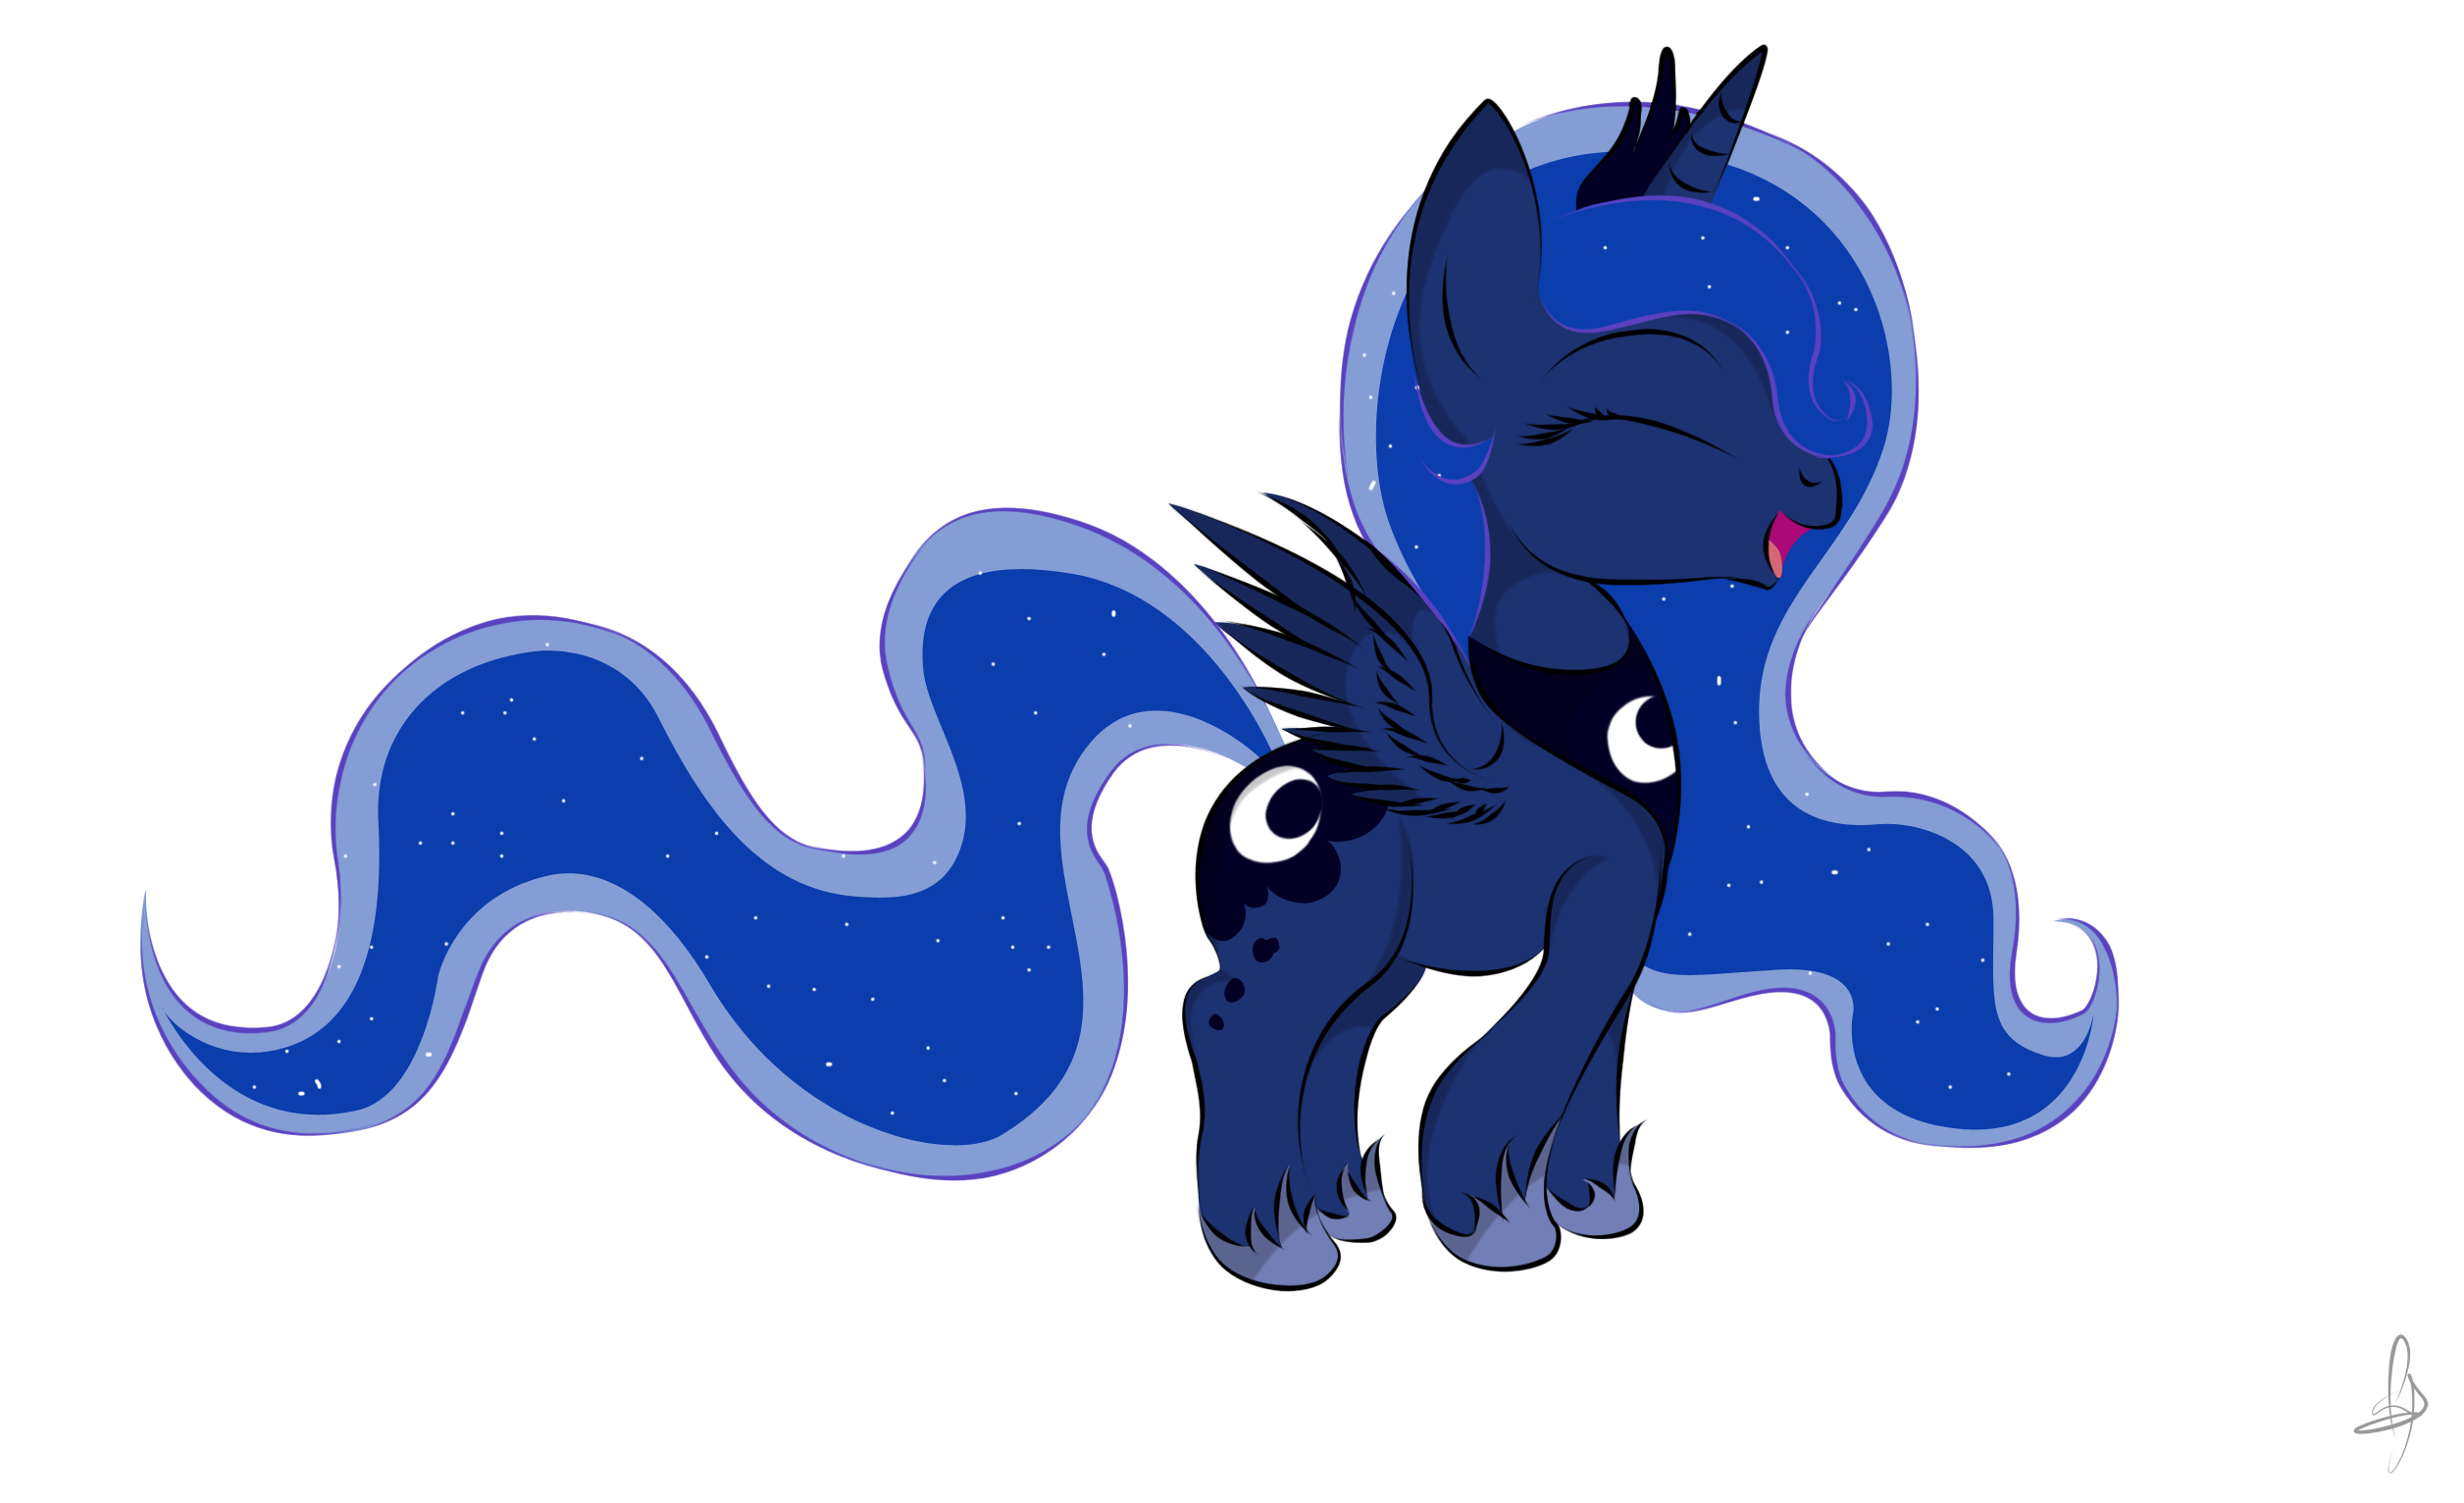 Filly luna demands hugs by V-D-K